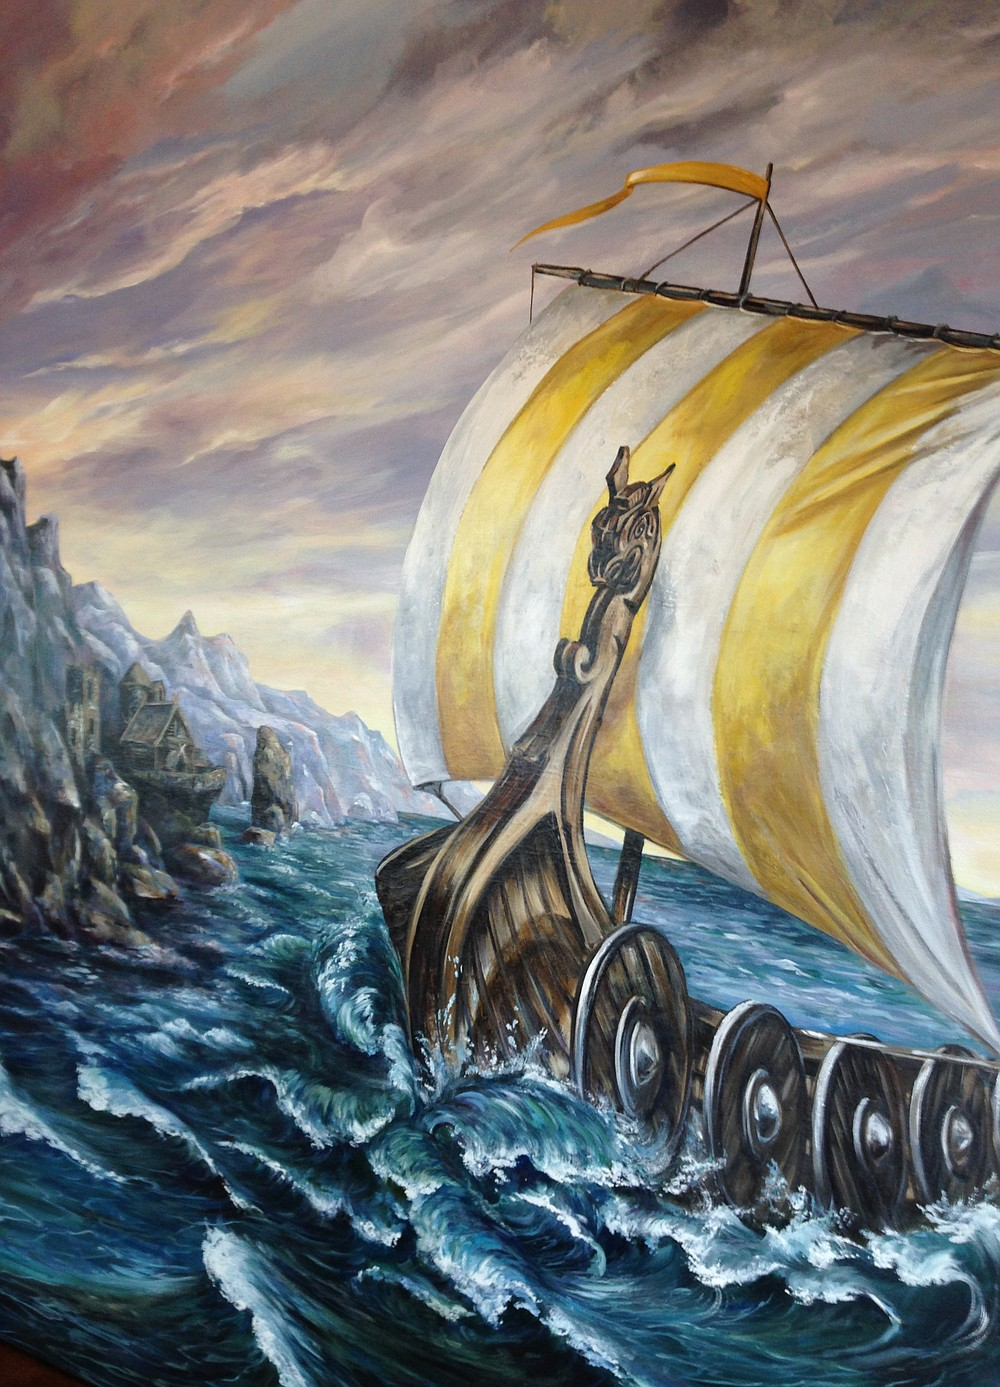 Local artist Robin Golden painted this Viking vessel to decorate the walls of Longship Brewery.